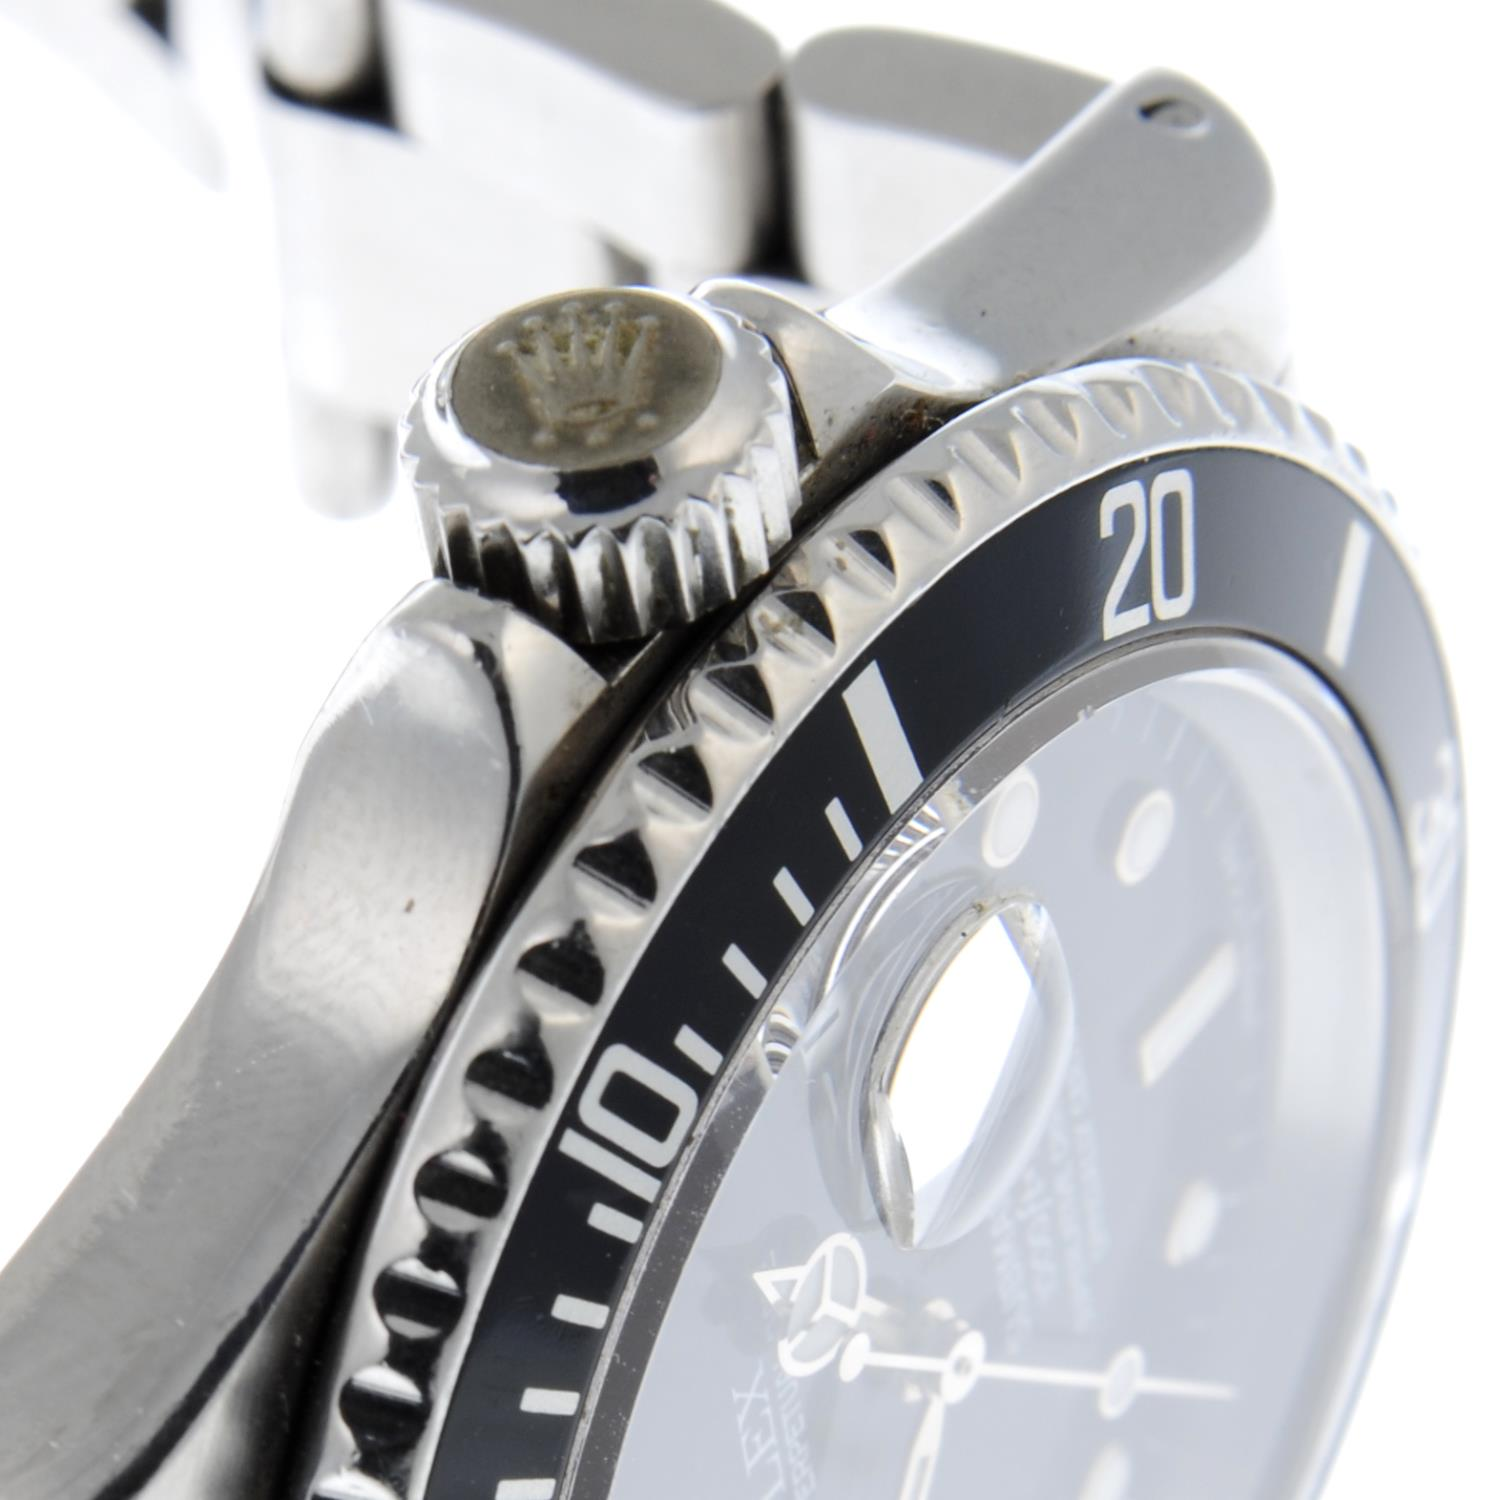 ROLEX - an Oyster Perpetual Date Submariner bracelet watch. - Image 5 of 5